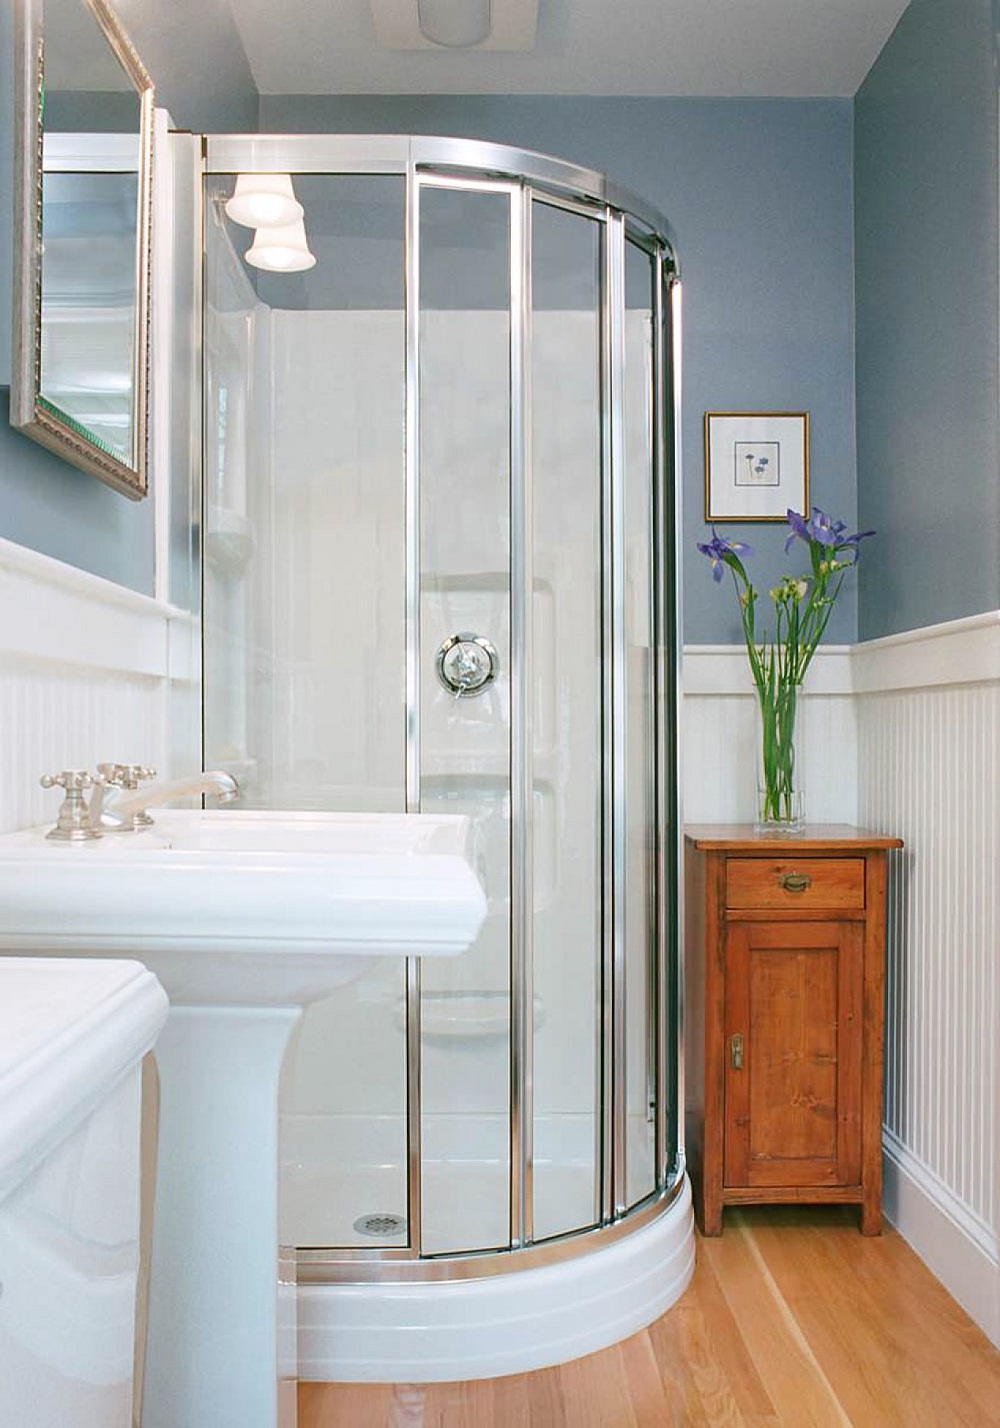 wb18 How to take full advantage of these bathroom paneling ideas